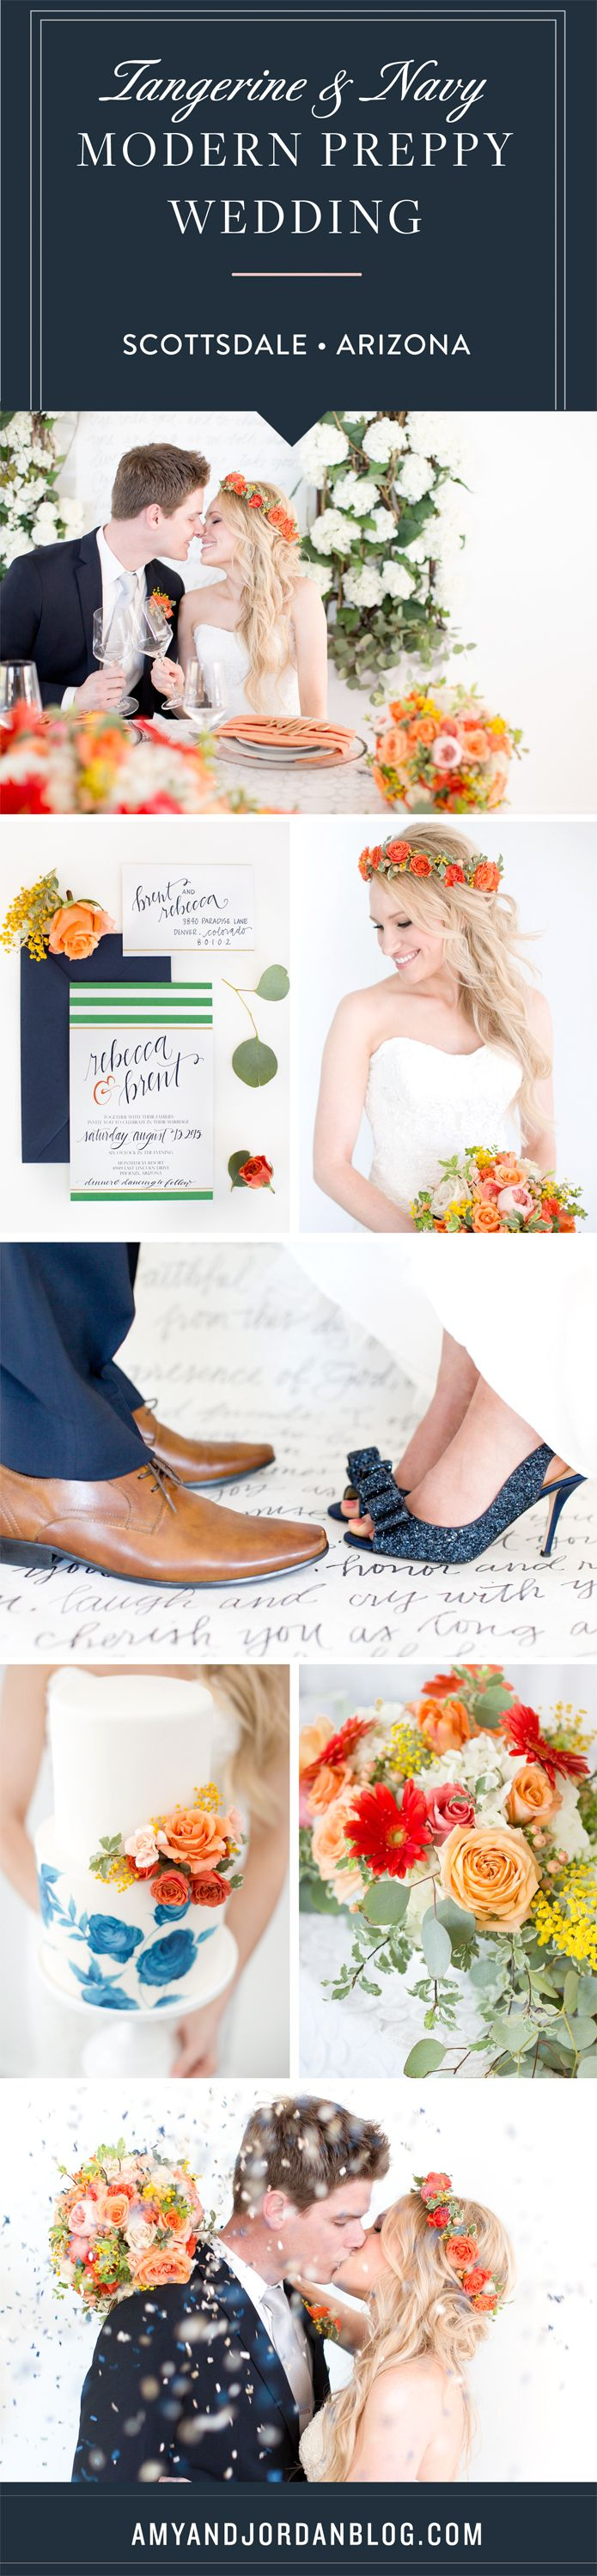 Tangerine and navy modern preppy wedding. Hand painted wedding cake and macaroons. Bride in a floral crown. The bride and groom's vows as an isle runner.